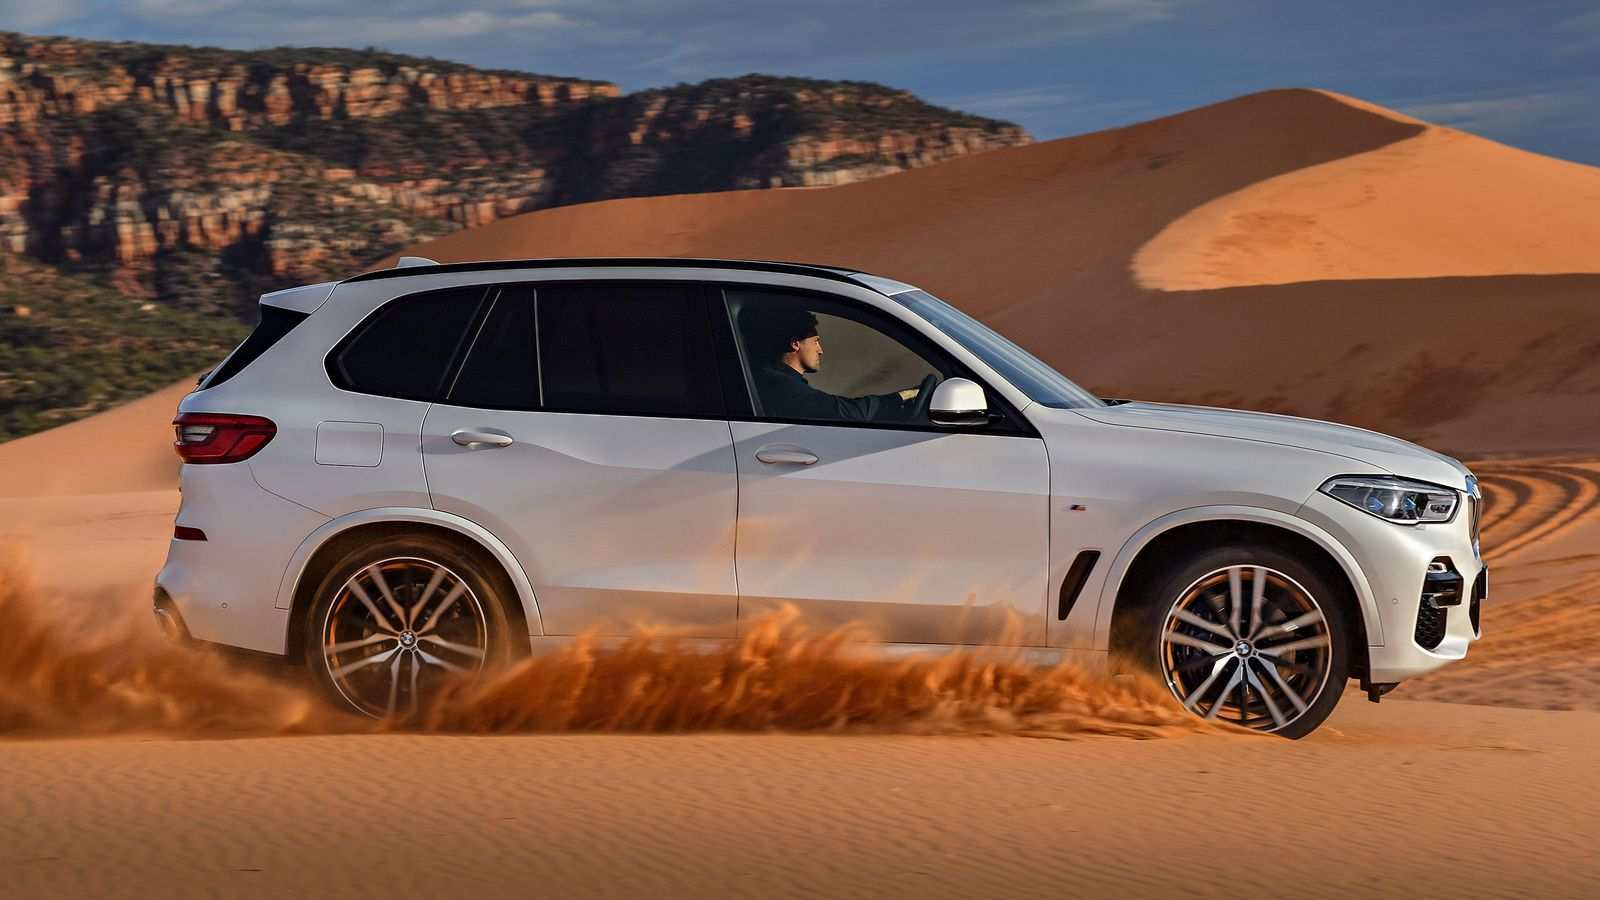 94 Gallery of 2019 Bmw Pro Tailgate Price by 2019 Bmw Pro Tailgate